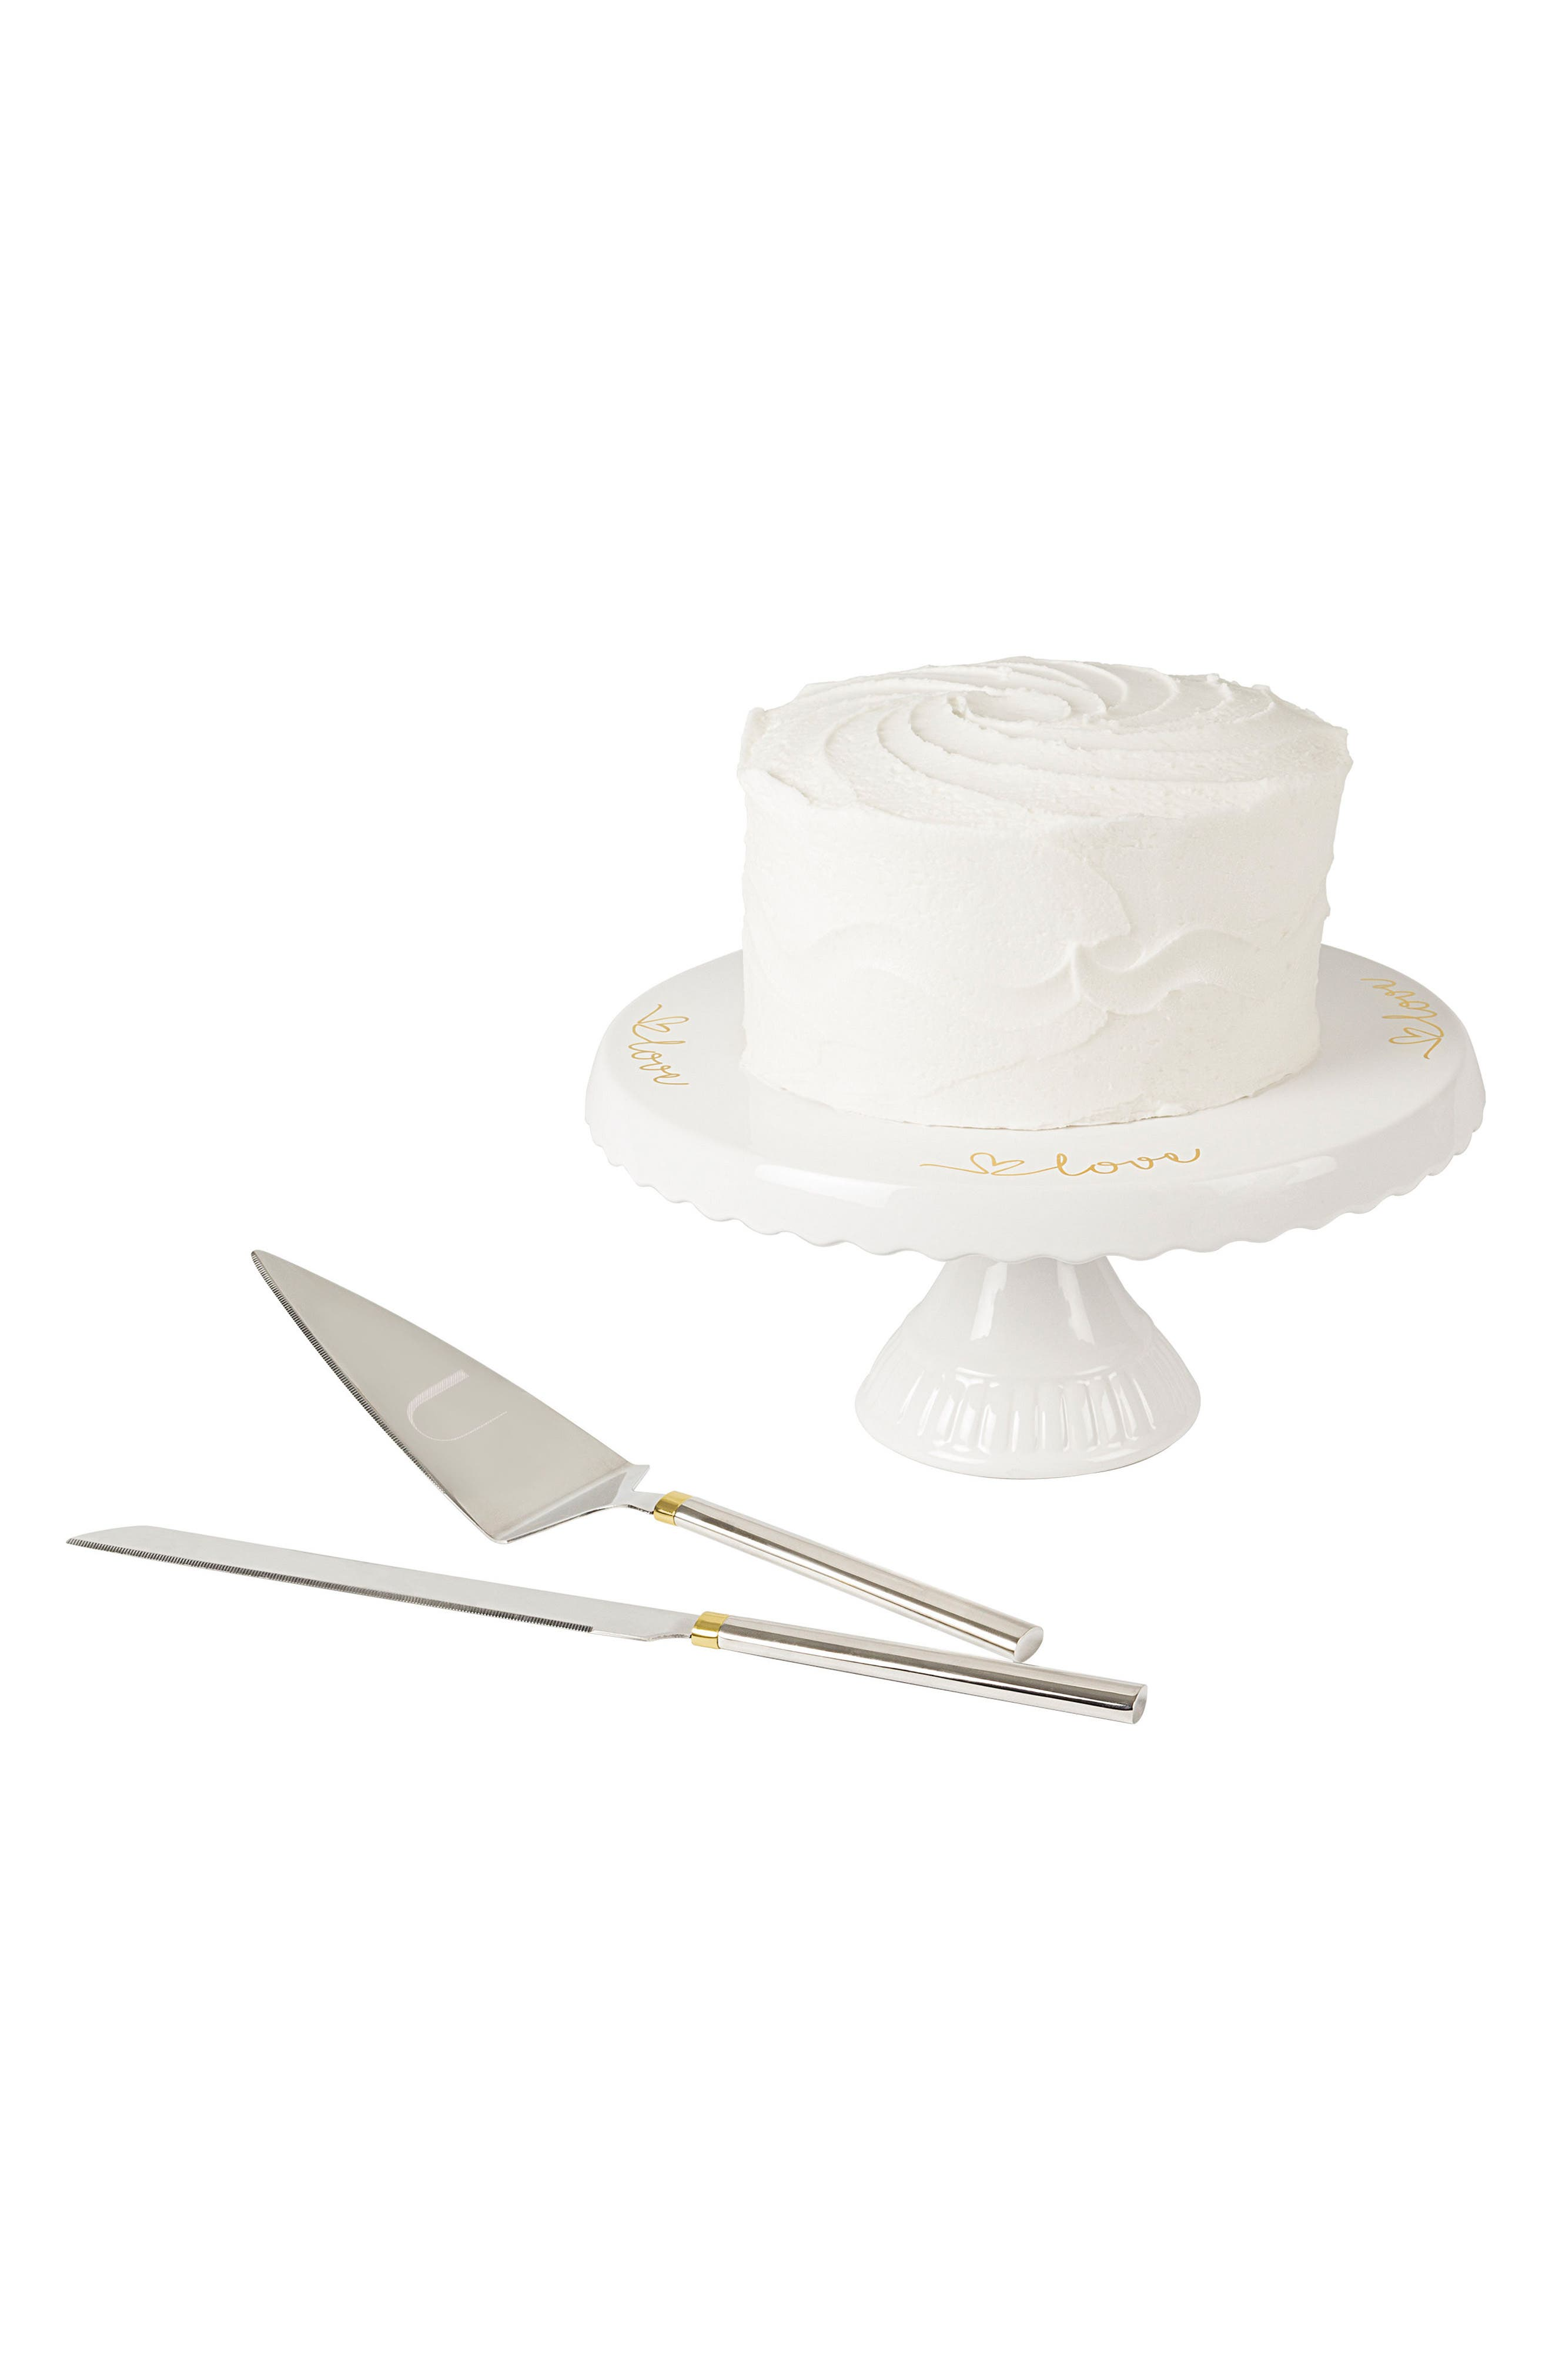 Love Monogram Cake Stand & Server Set,                             Main thumbnail 22, color,